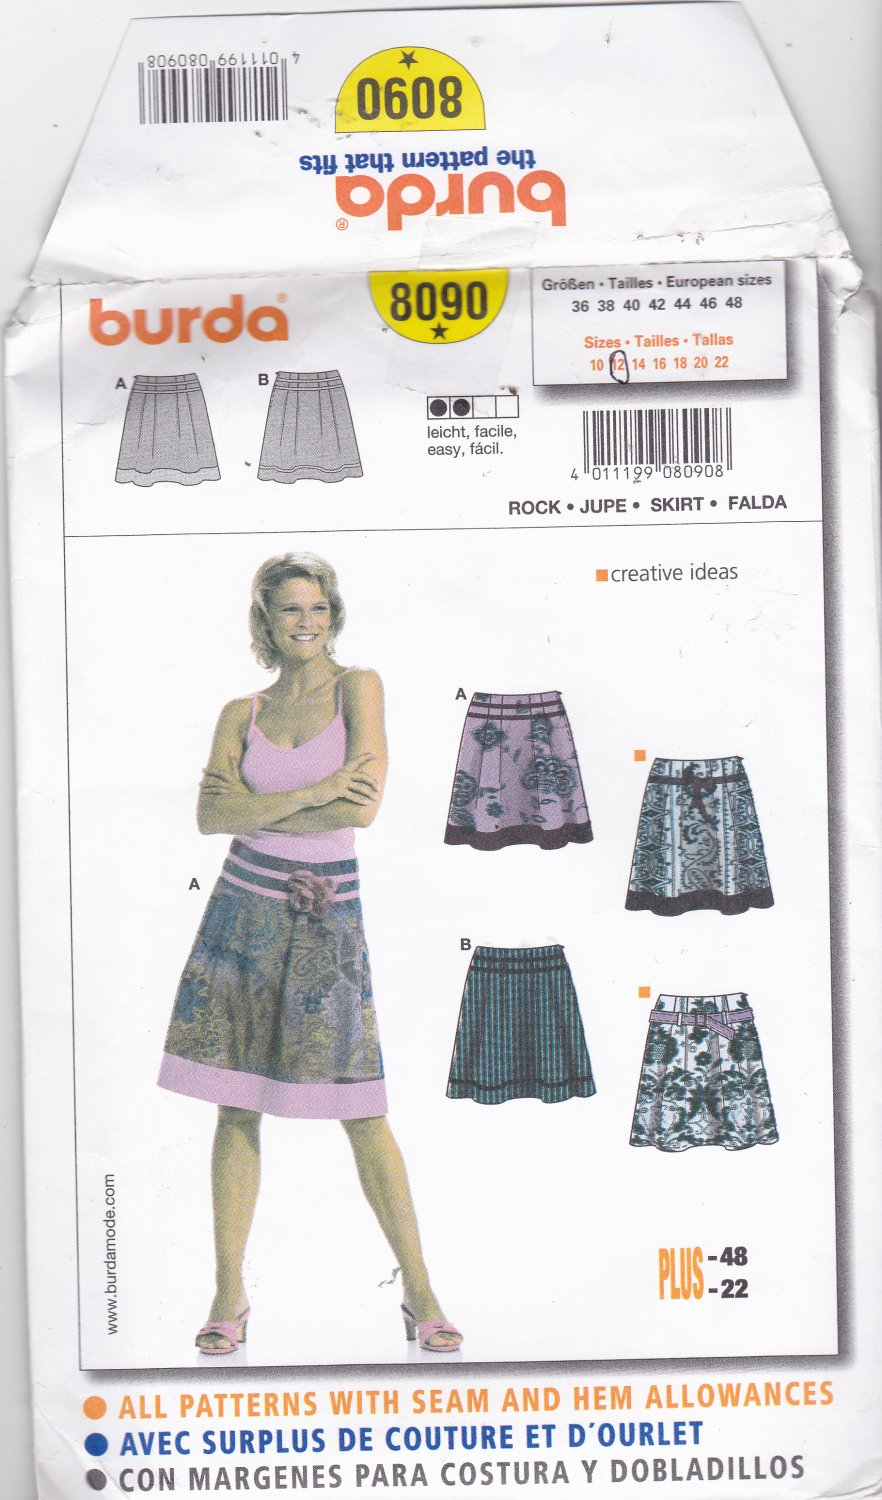 Burda 8090 size 12, may be missing pieces, 50 cents plus shipping